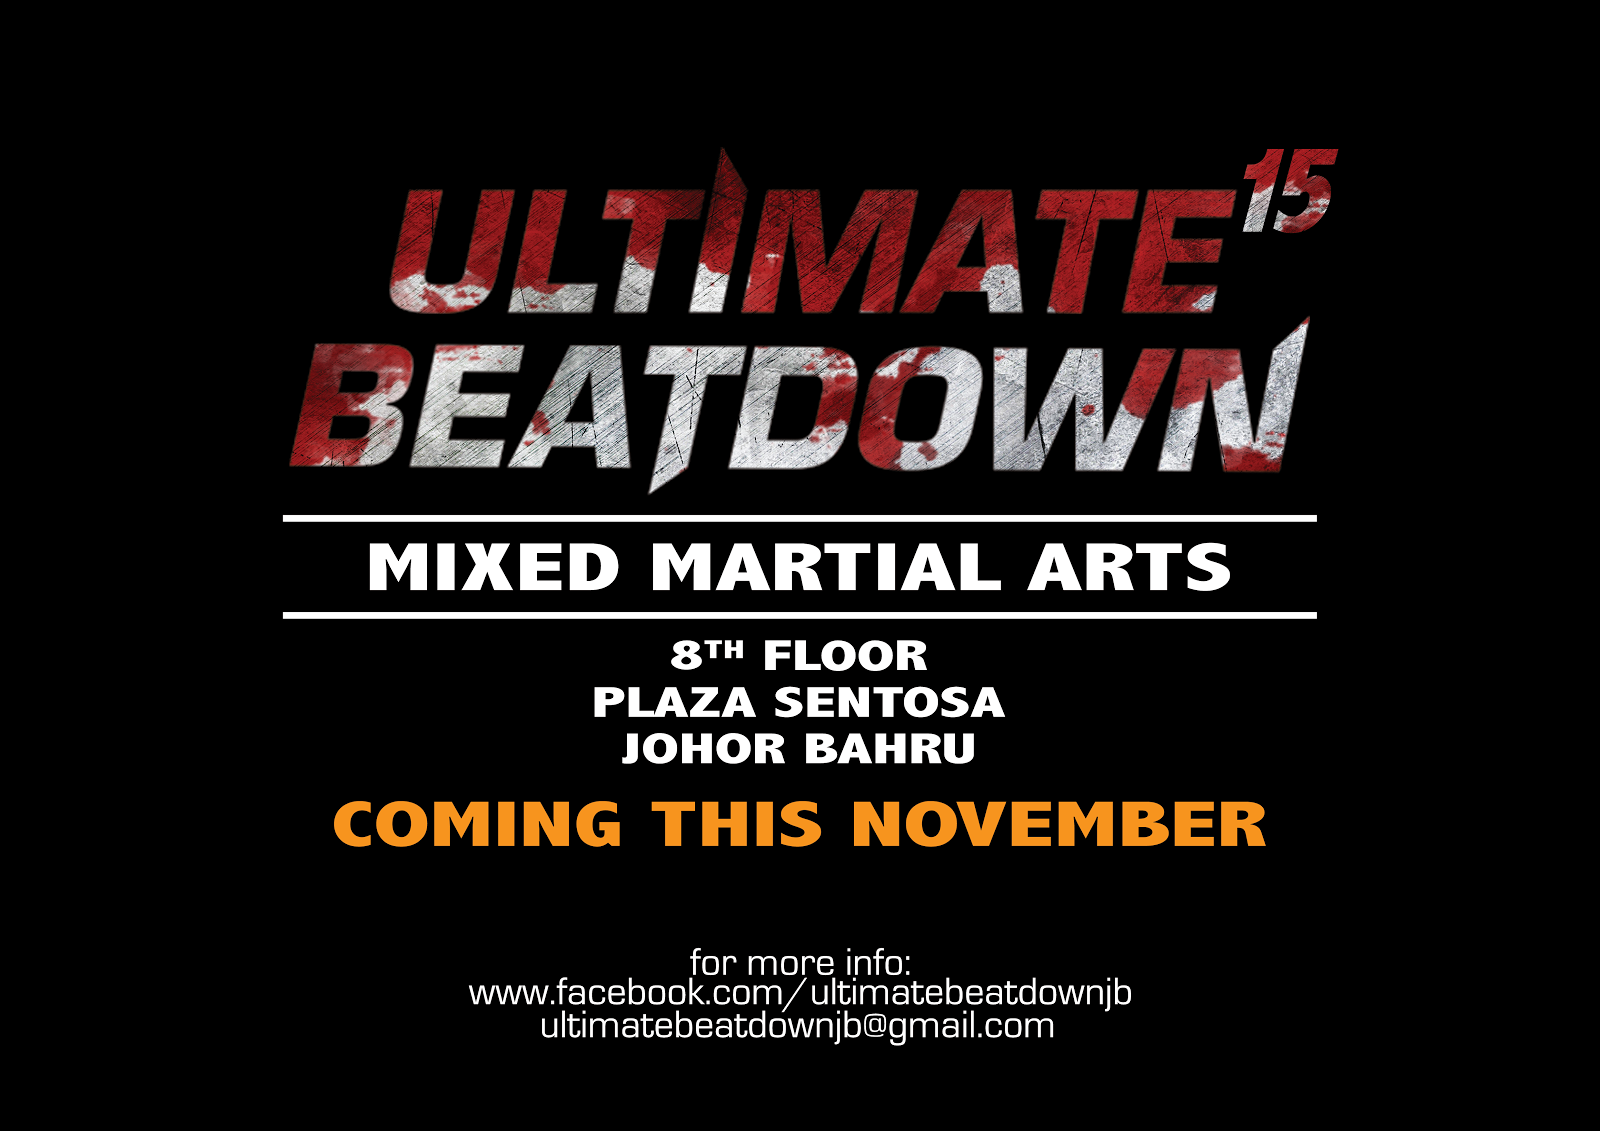 Ultimate Beatdown 15